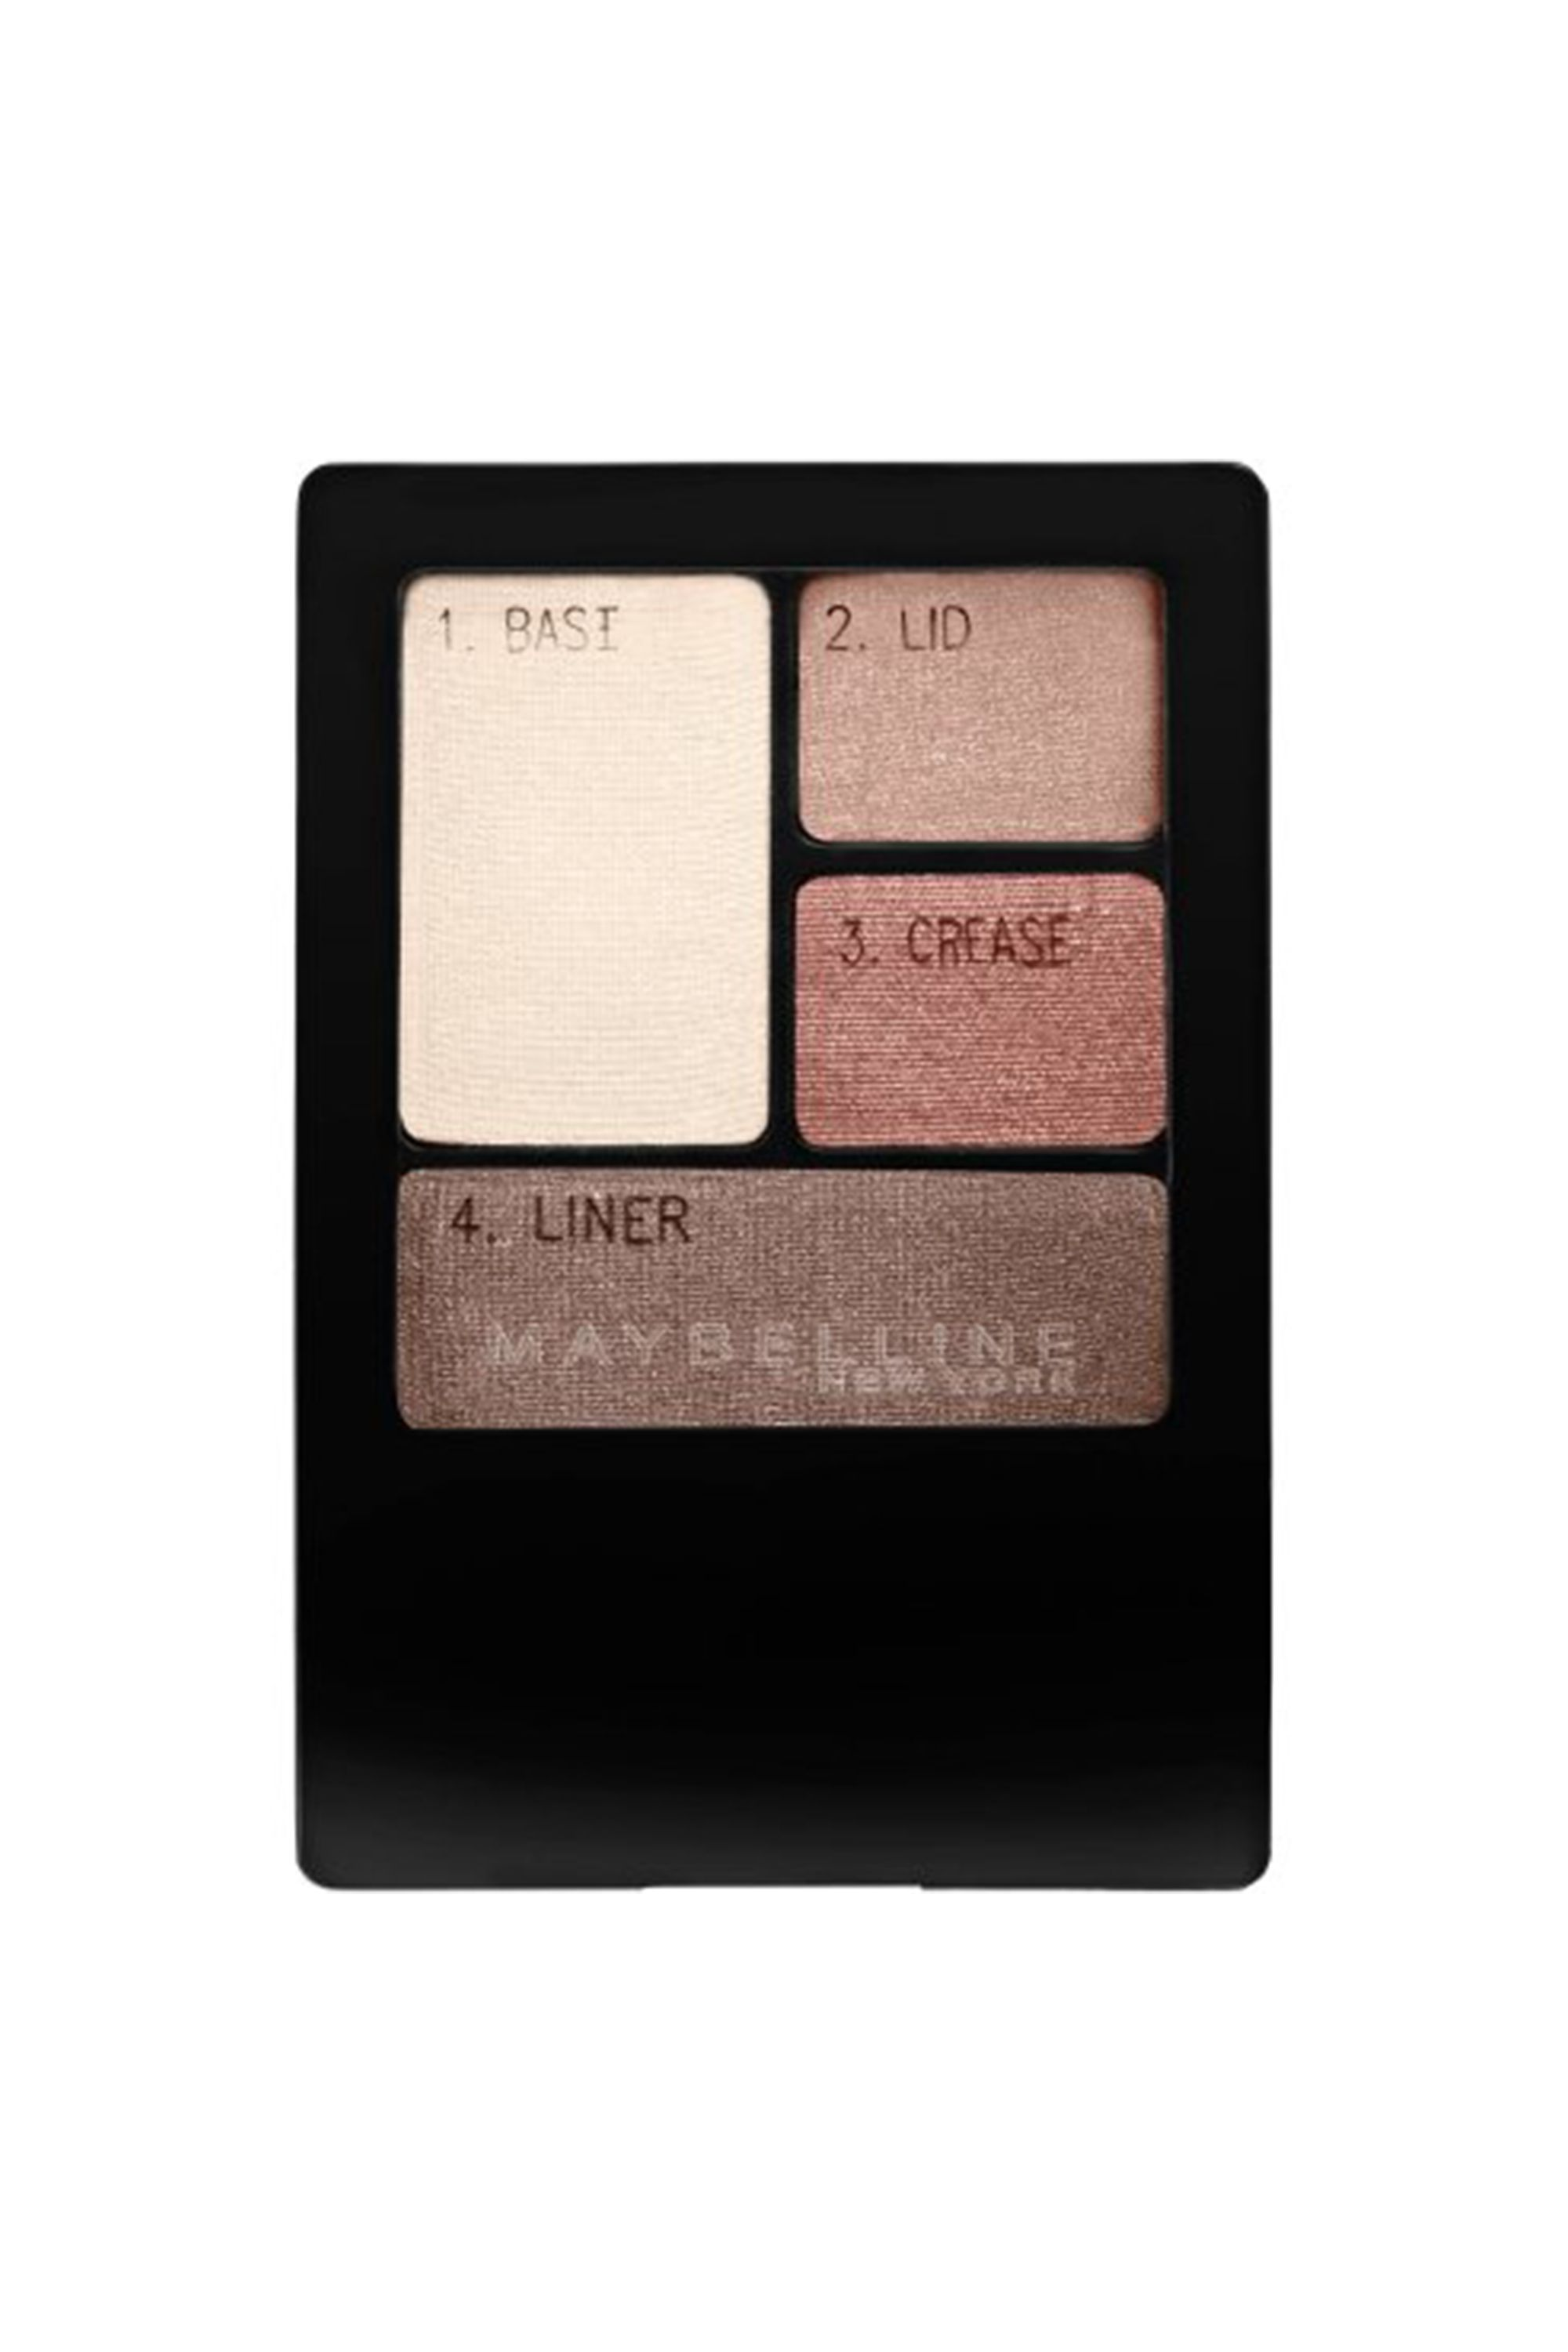 "<p>A smoky eye with charcoal grays and black is classic but can be a bit harsh against pale blue eyes. Turnbow suggests trying a softer, more flattering alternative with a spectrum of warm neutrals.</p><p>Maybelline New York Expert Wear Eye Shadow in Natural Smokes; $6.25, <a href=""http://www.ulta.com/expert-wear-eyeshadow-quad?productId=xlsImpprod6340302"" target=""_blank"" data-tracking-id=""recirc-text-link"">ulta.com</a></p>"